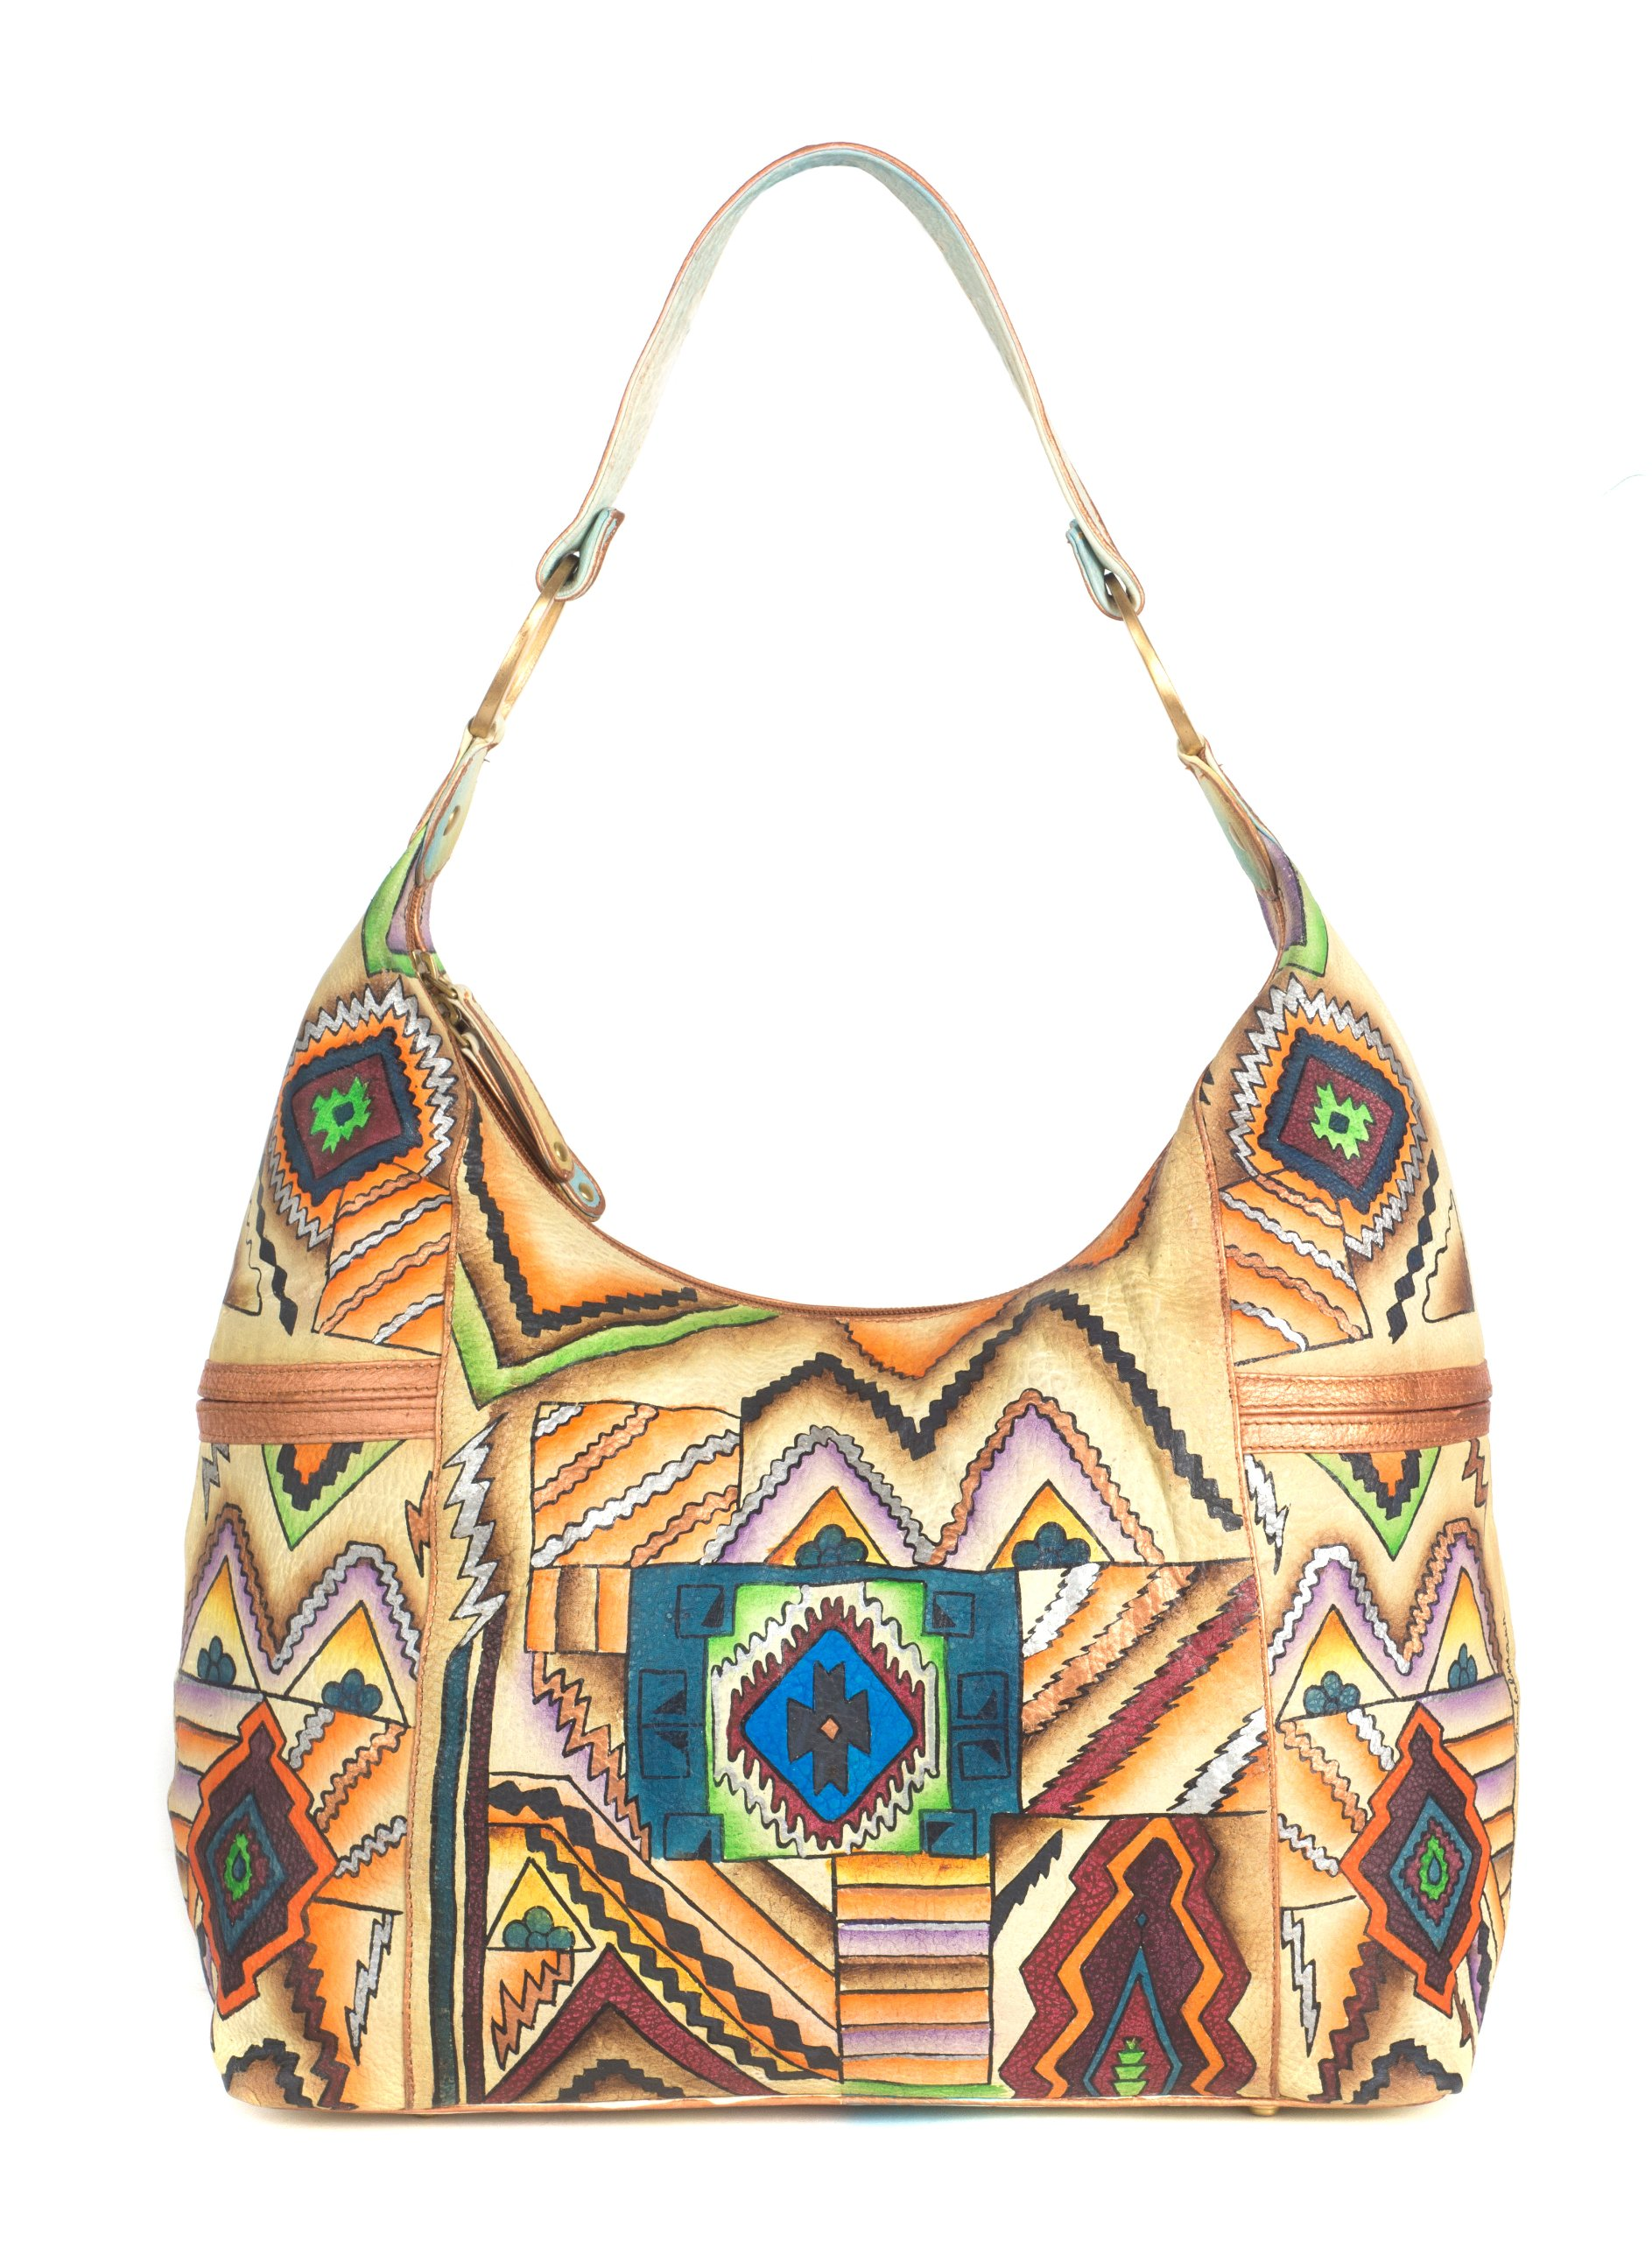 ZIMBELMANN RUTH Genuine Nappa Leather Hand-painted Hobo Shoulder Bag